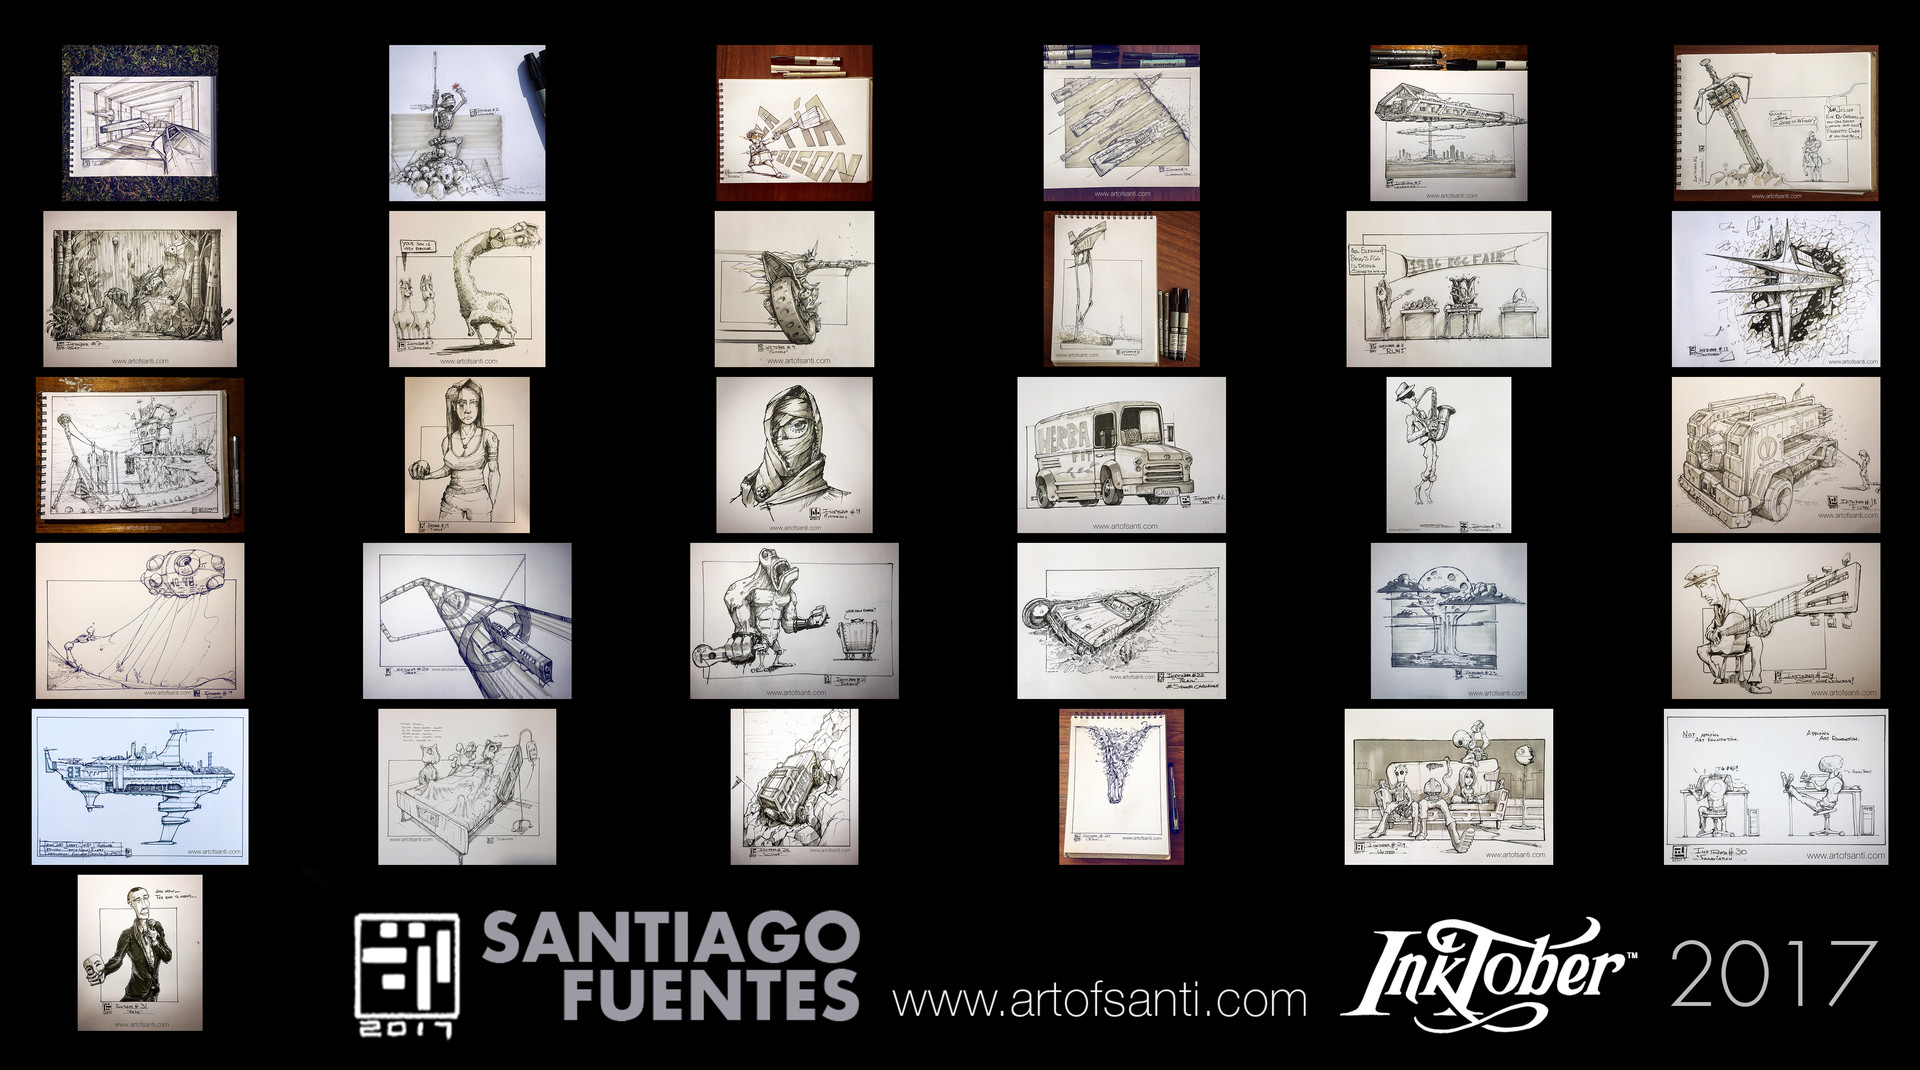 Santiago fuentes inktober contact sheet